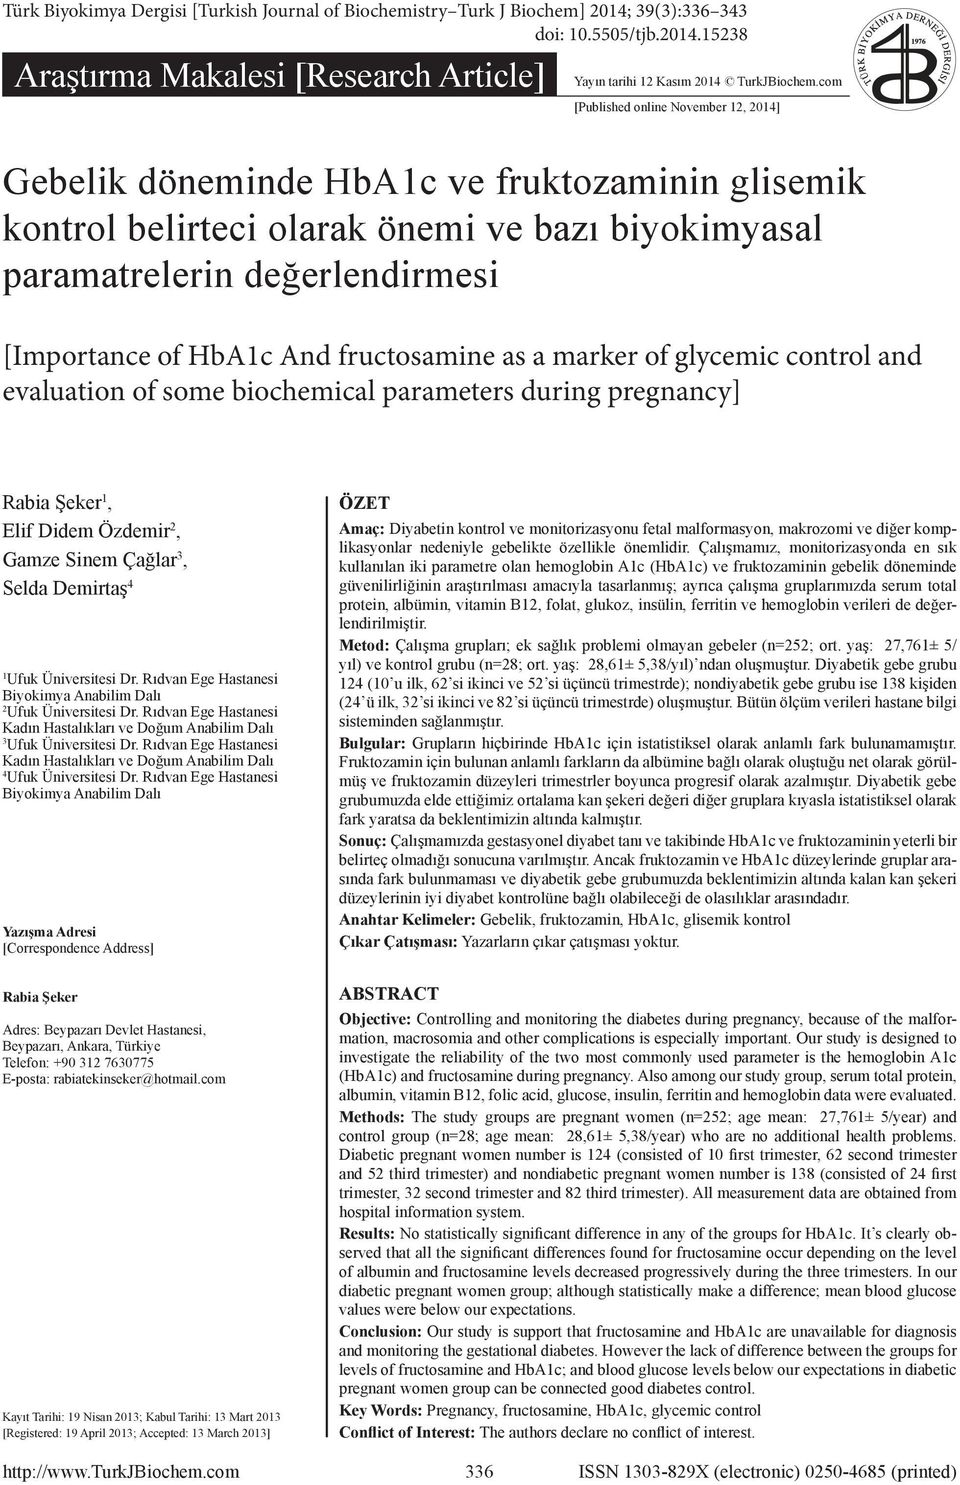 fructosamine as a marker of glycemic control and evaluation of some biochemical parameters during pregnancy] Rabia Şeker 1, Elif Didem Özdemir 2, Gamze Sinem Çağlar 3, Selda Demirtaş 4 1 Ufuk